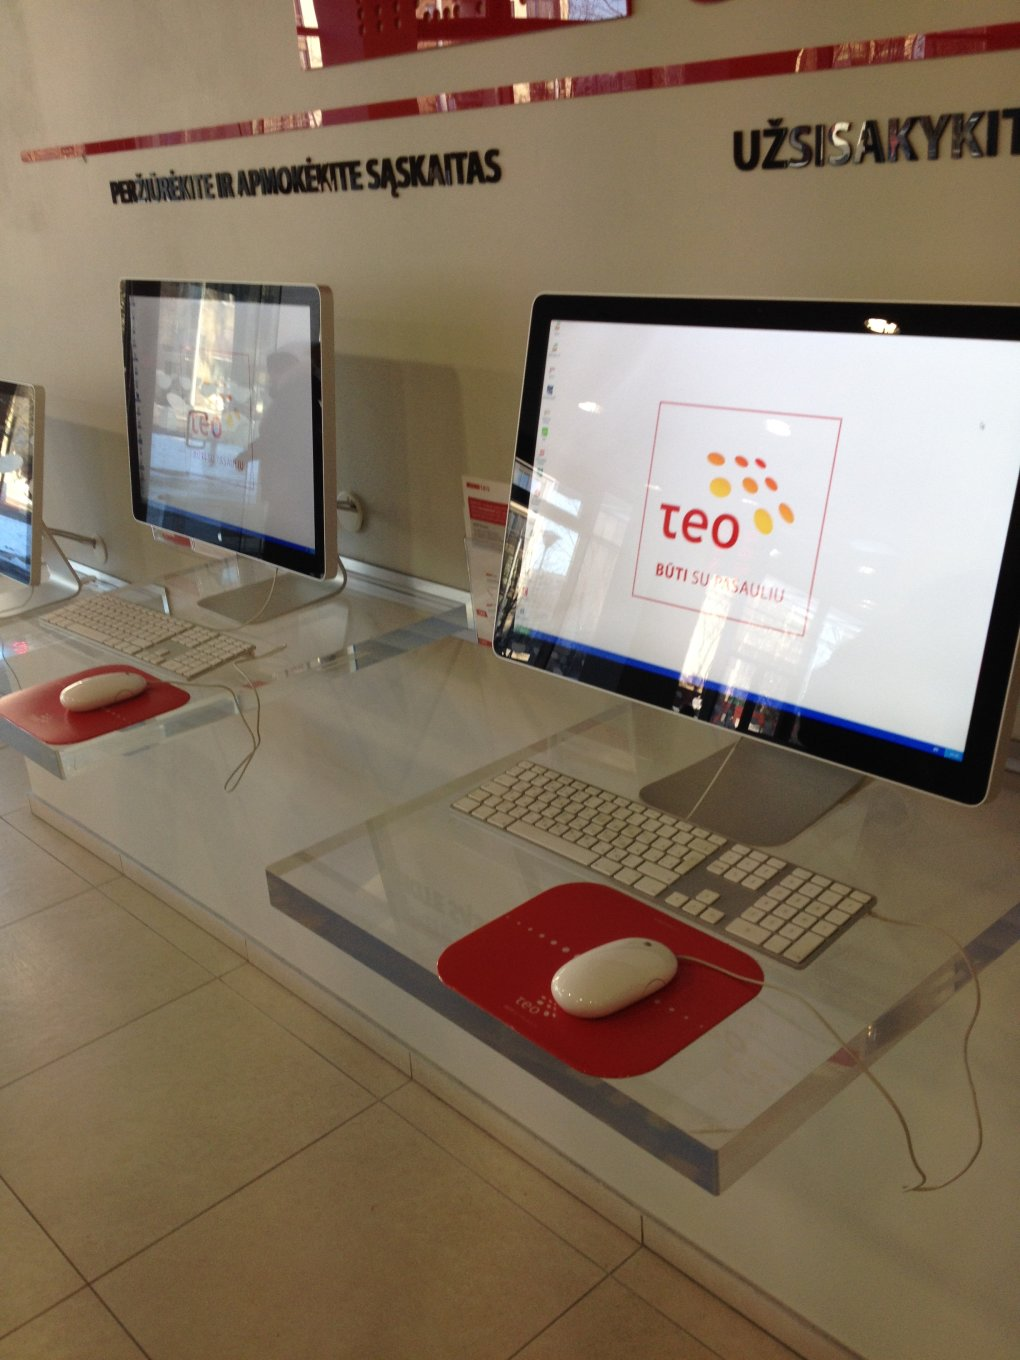 xp - huge expensive apple monitor, apple keyboard, apple mouse and wait... what? windows xp at the biggest telecommunication company in lithuania